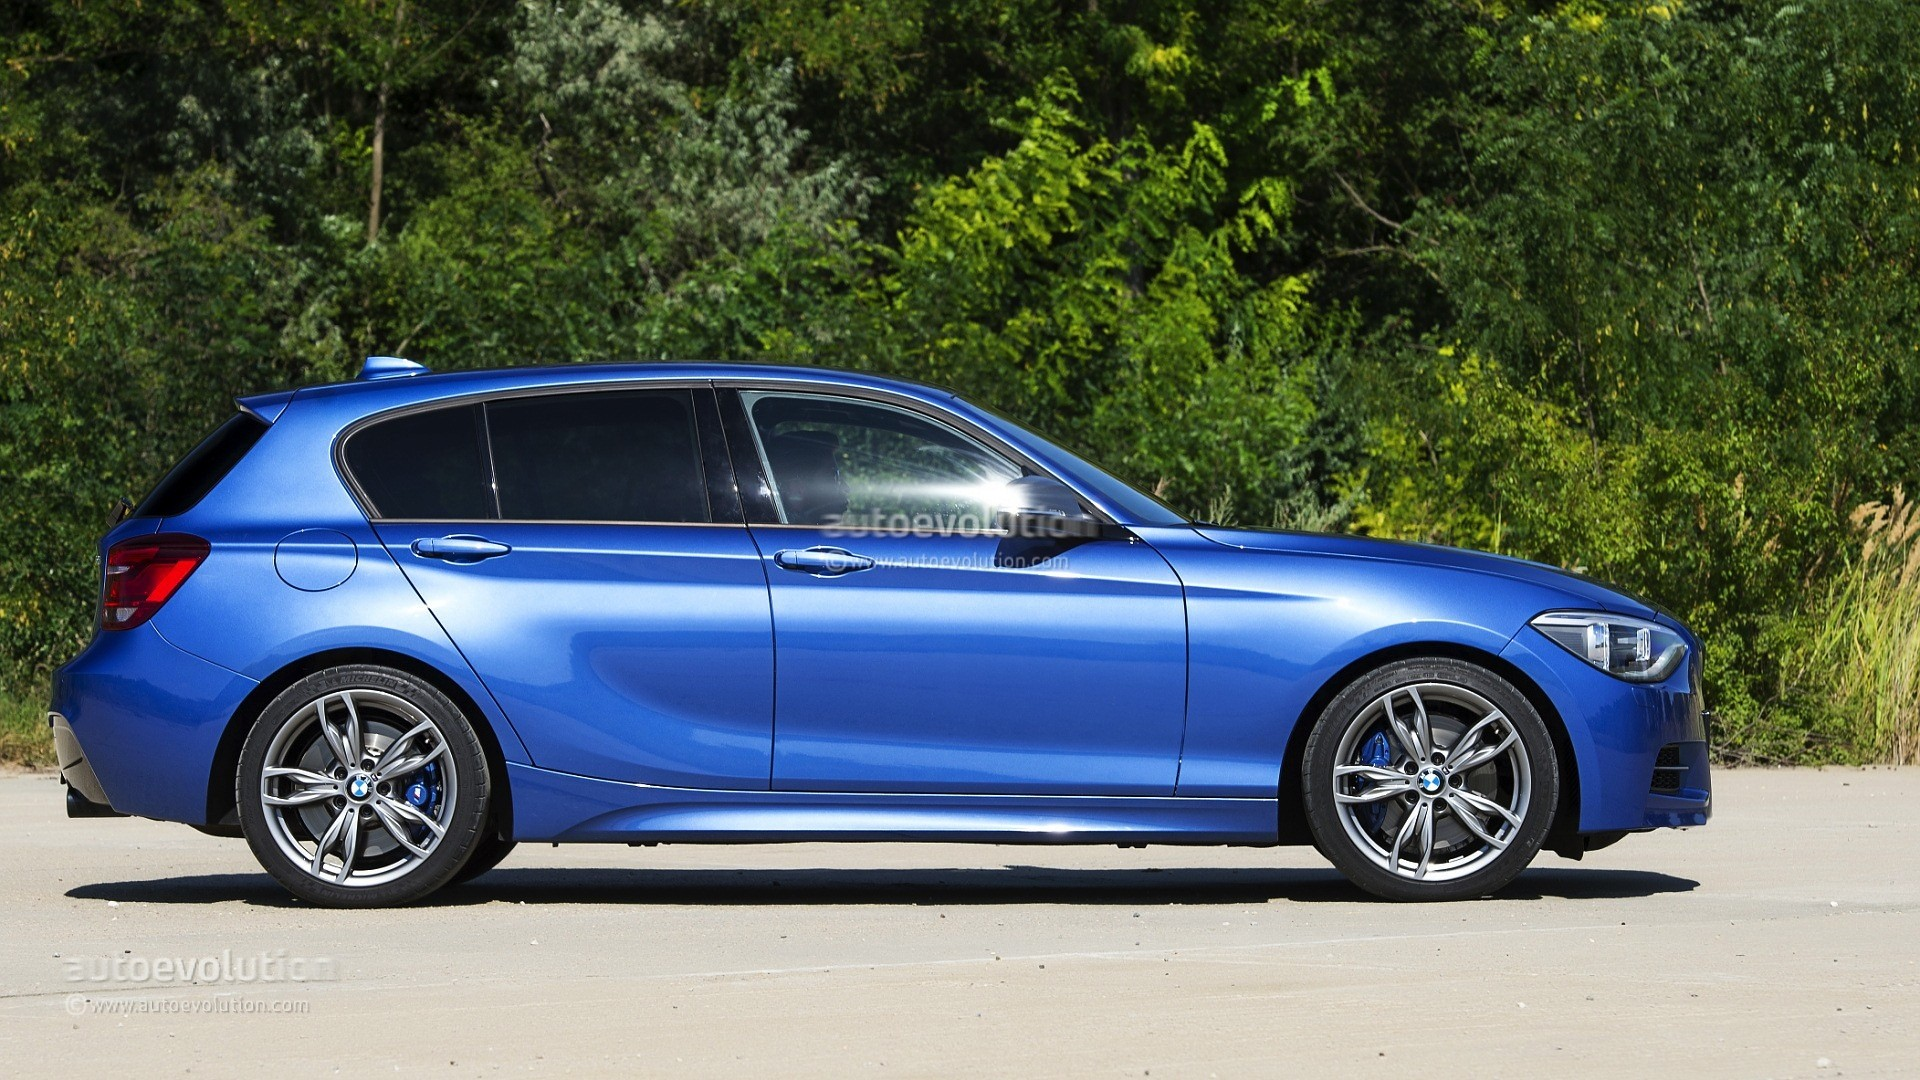 bmw 1 series pre facelift vs bmw 1 series facelift